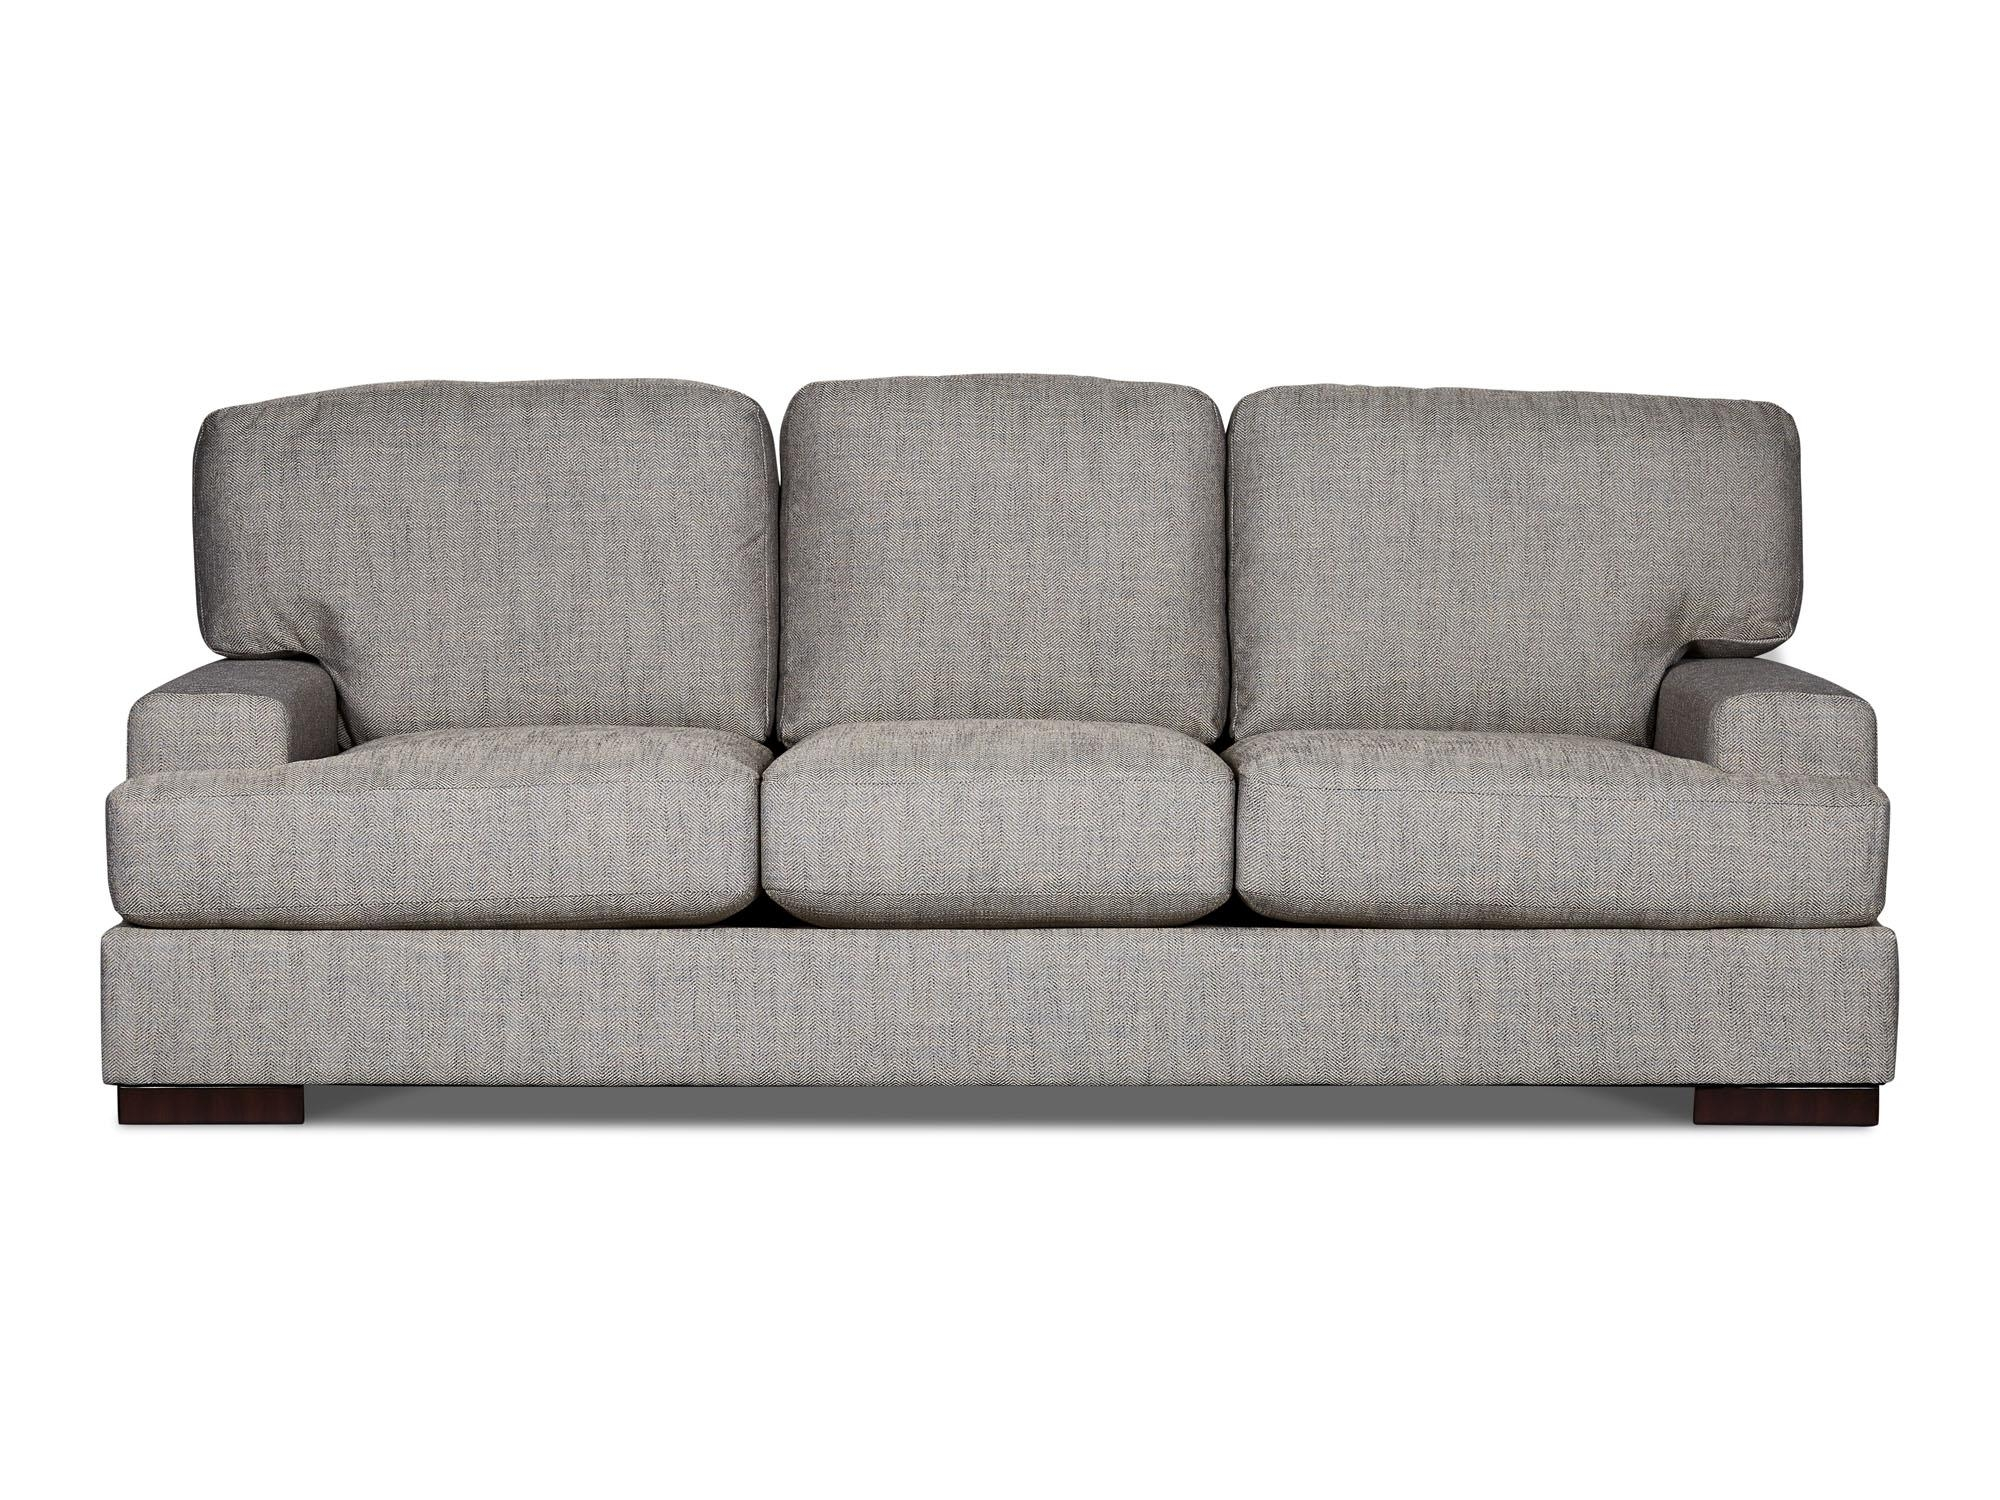 single sofa design liquidation vancouver 23 best collection of cushion beds ideas